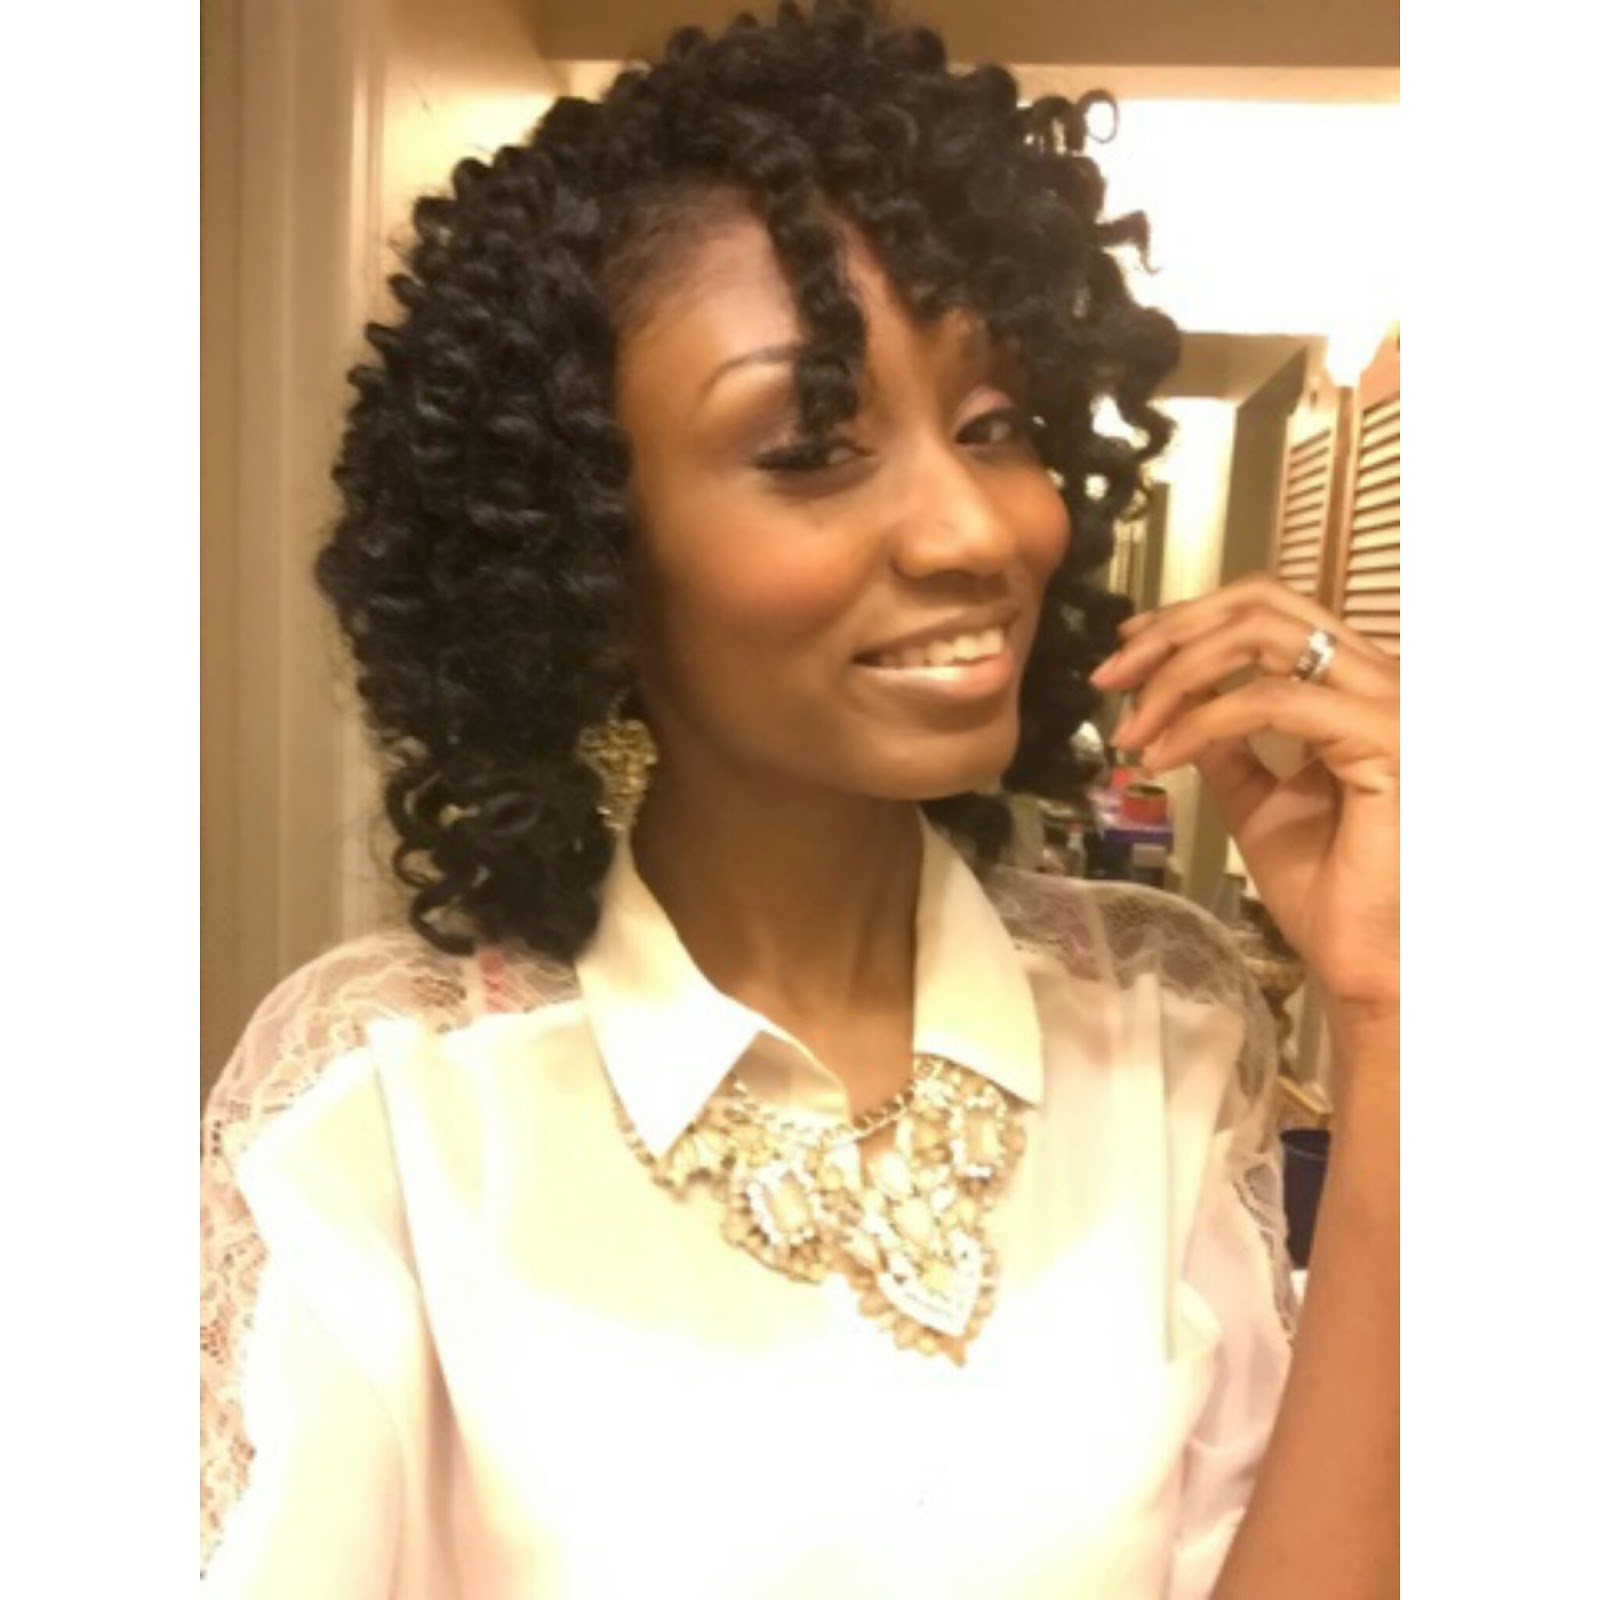 Crochet Hair Latch Hook : ... Hair Journey....Lets Grow!: First Attempt! Crochet Braids/Twistout